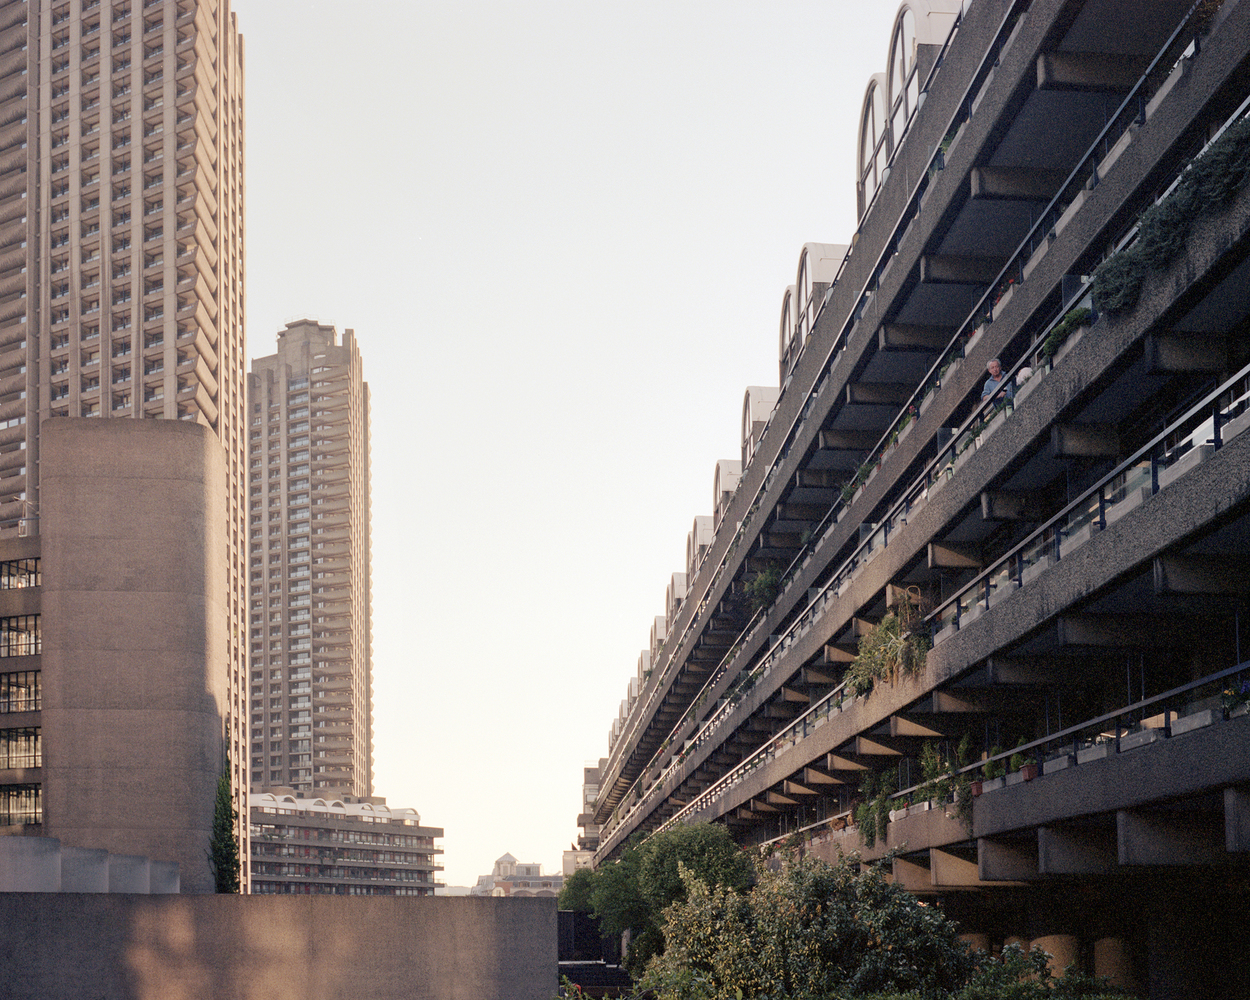 Utopia - London - Photography - Brutalist - Architecture - IGS Magazine - 17